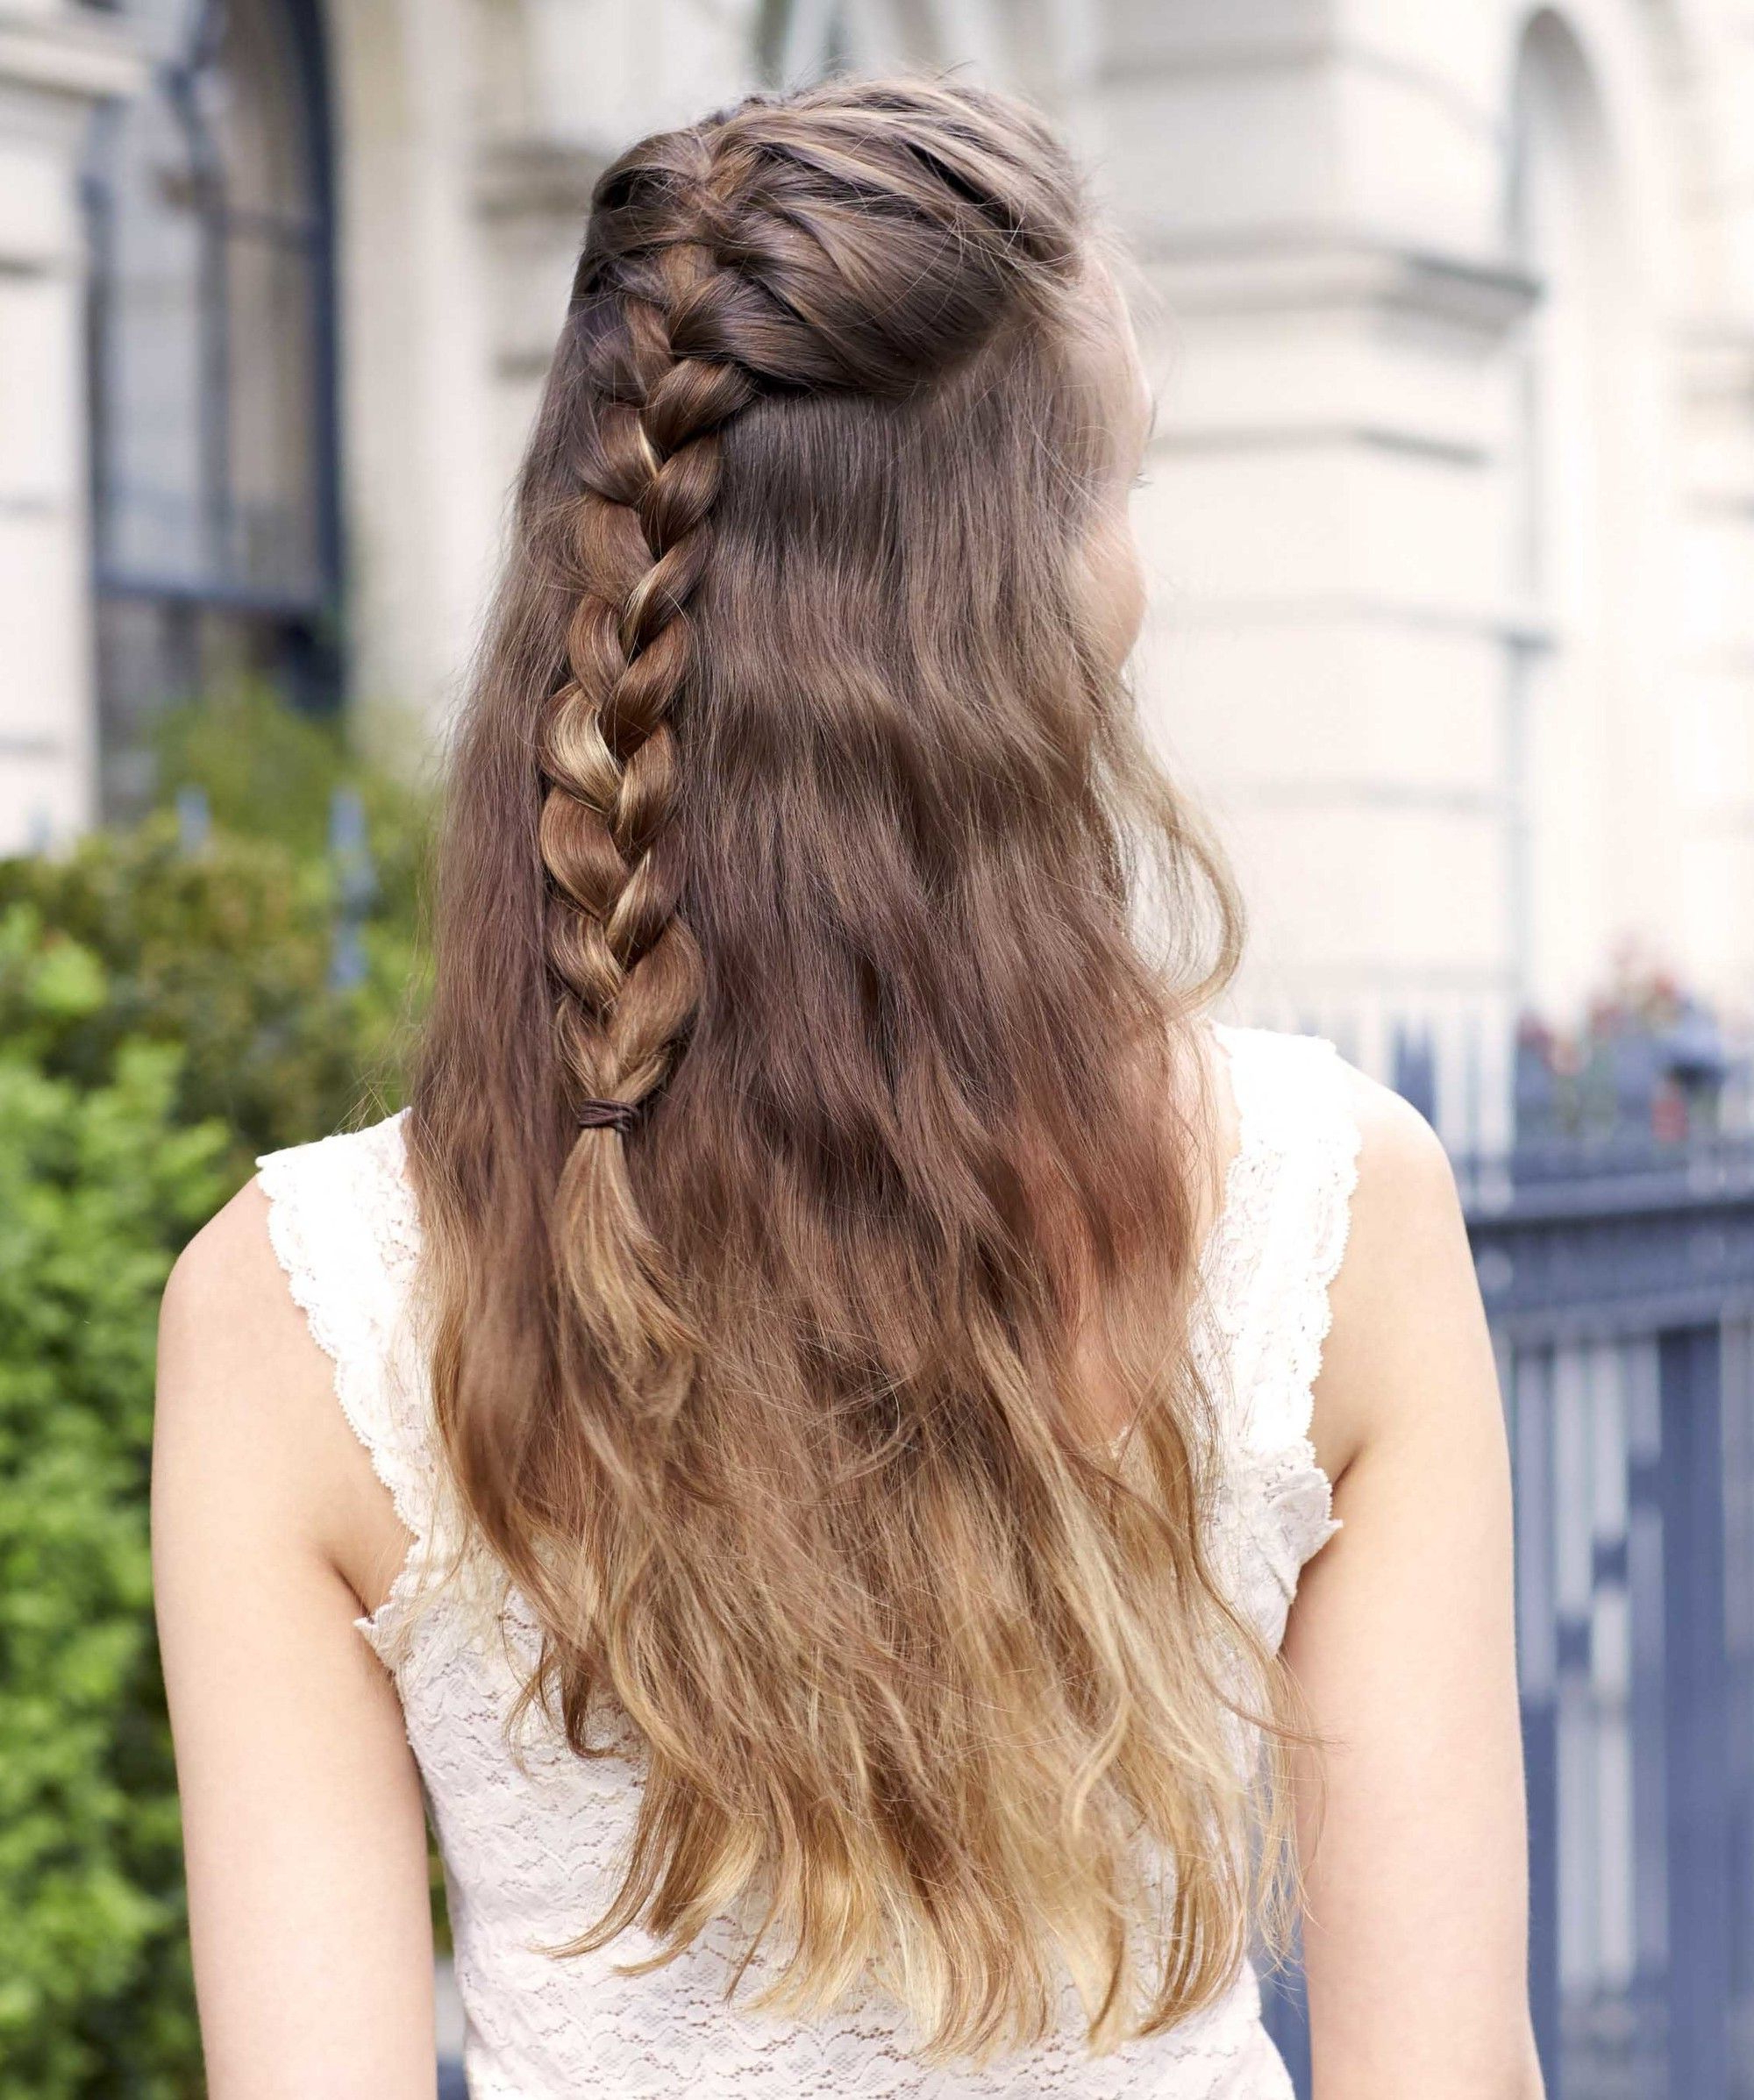 40+ Half Braided Hairstyles You Can Master In Minutes Throughout Well Known Rope Half Braid Hairstyles (View 11 of 20)